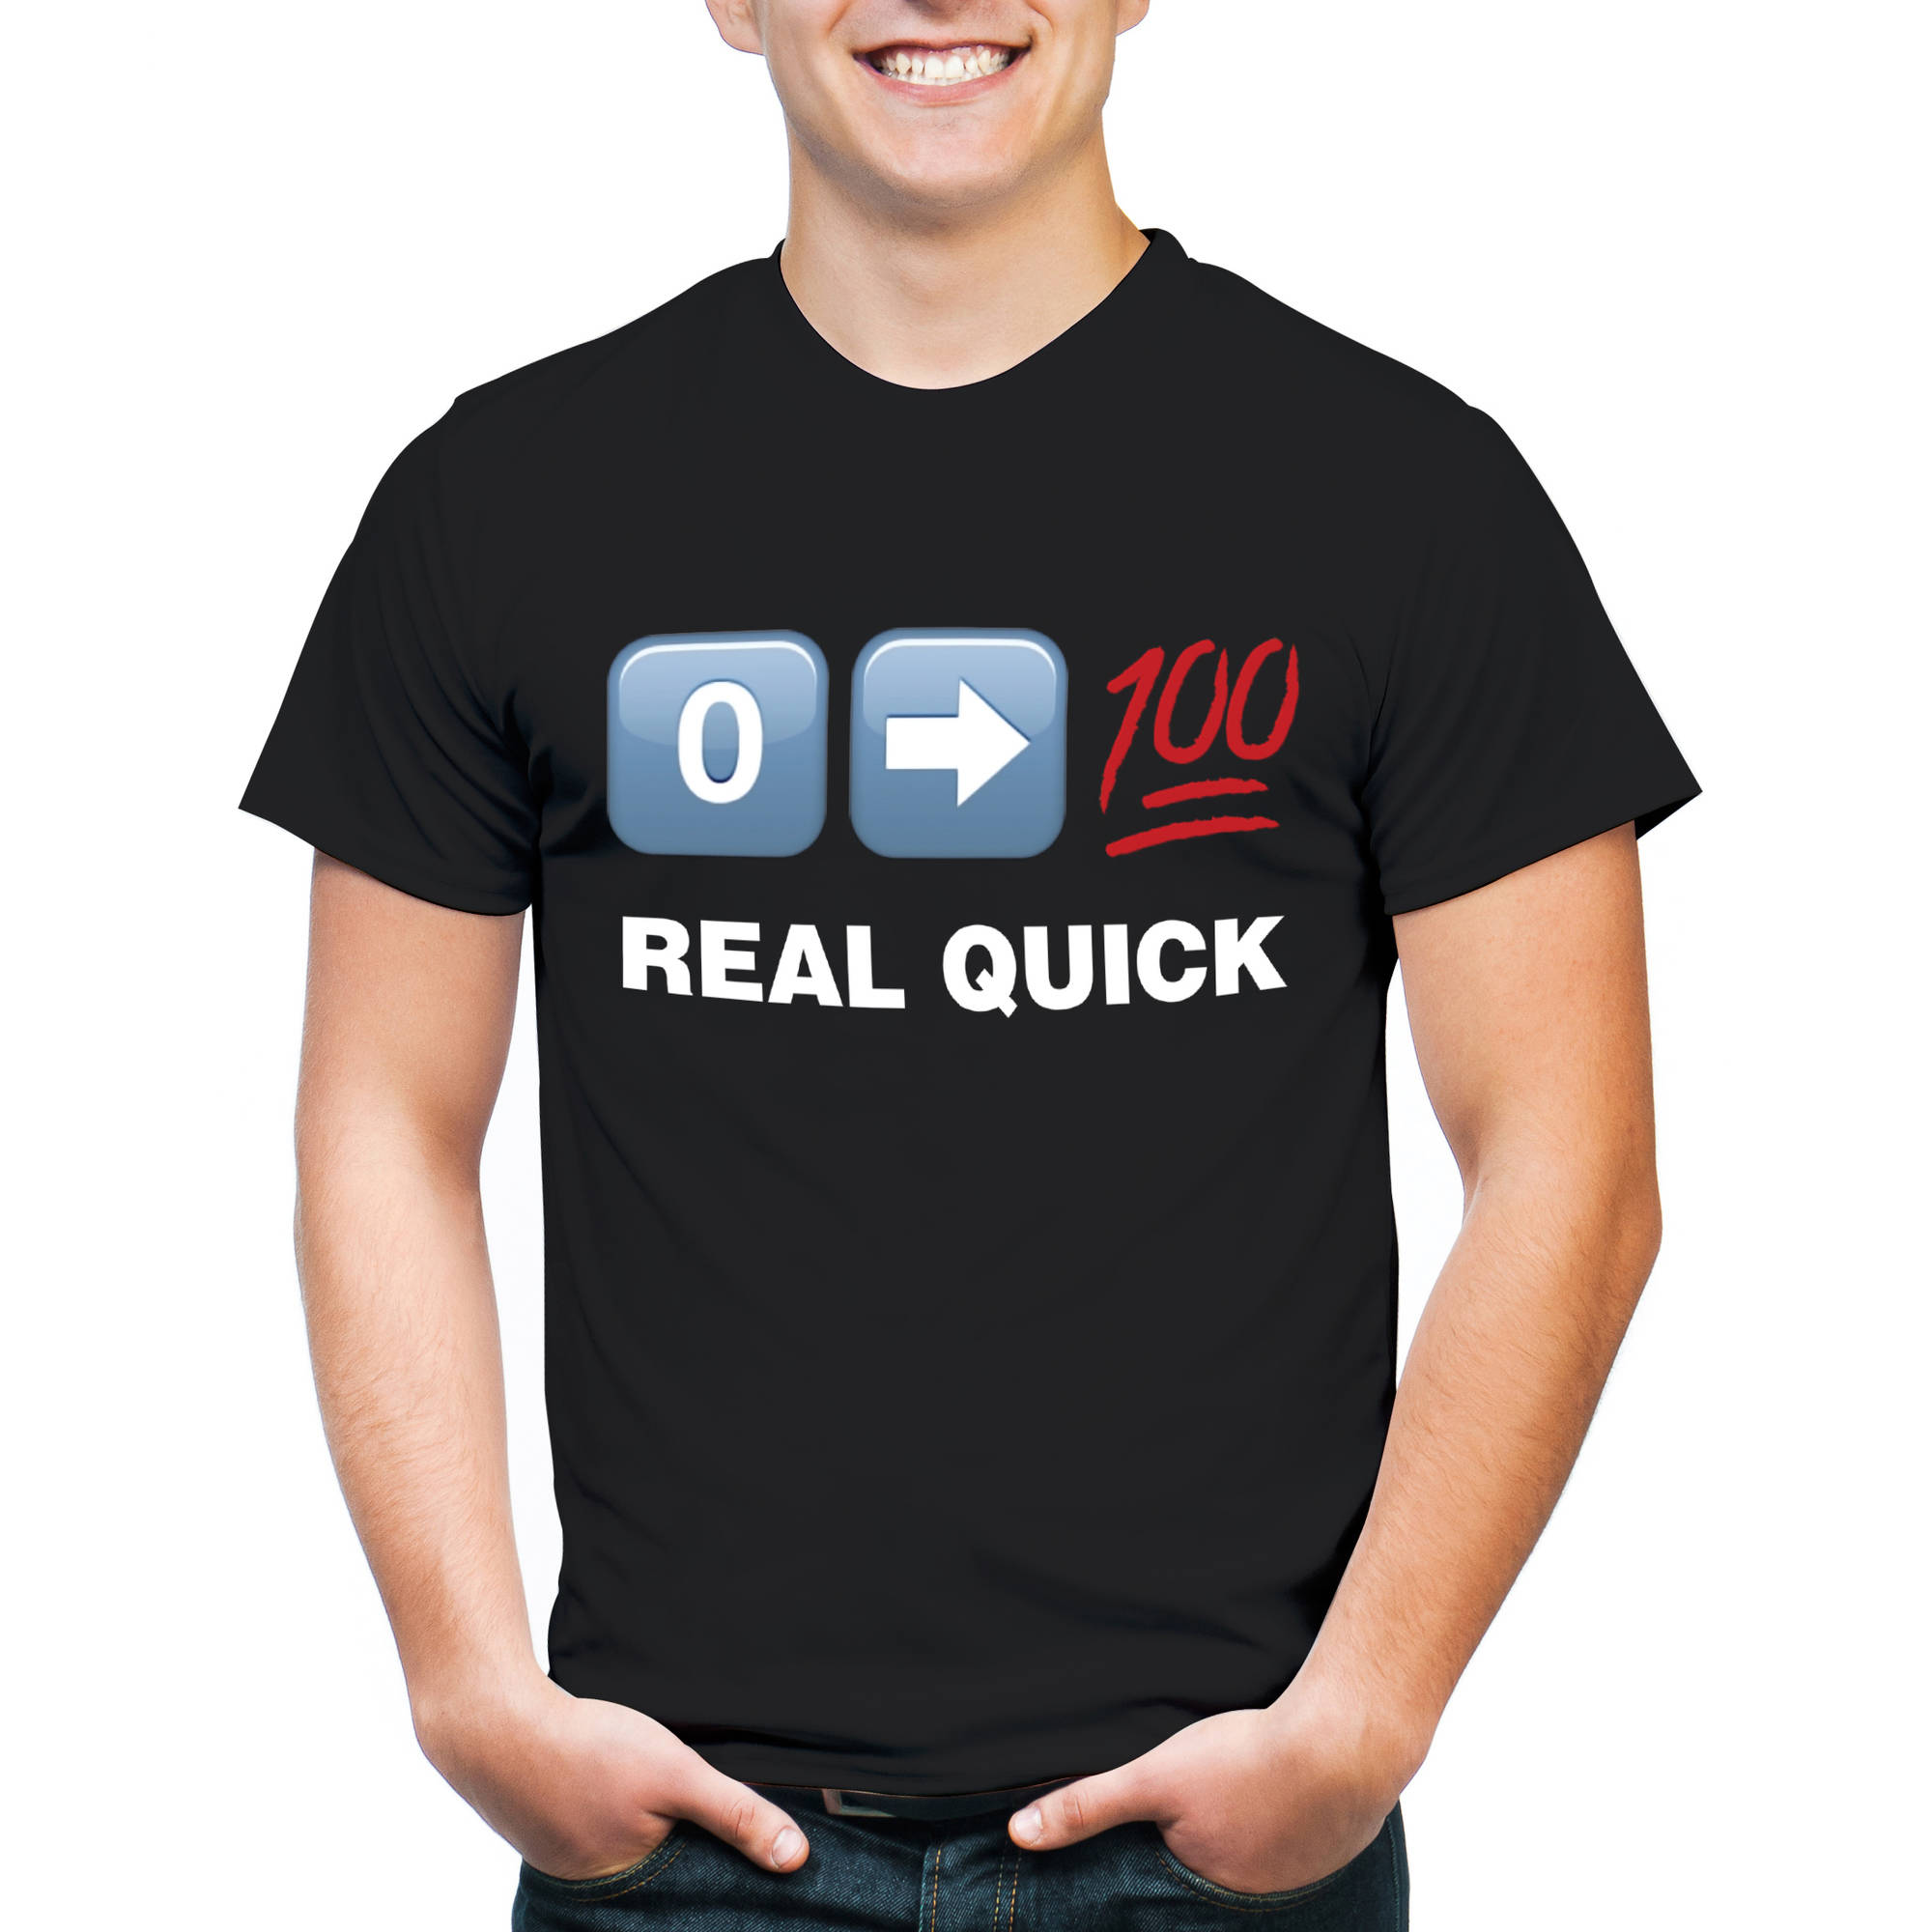 0 --> 100 Real Quick Men's Graphic Tee